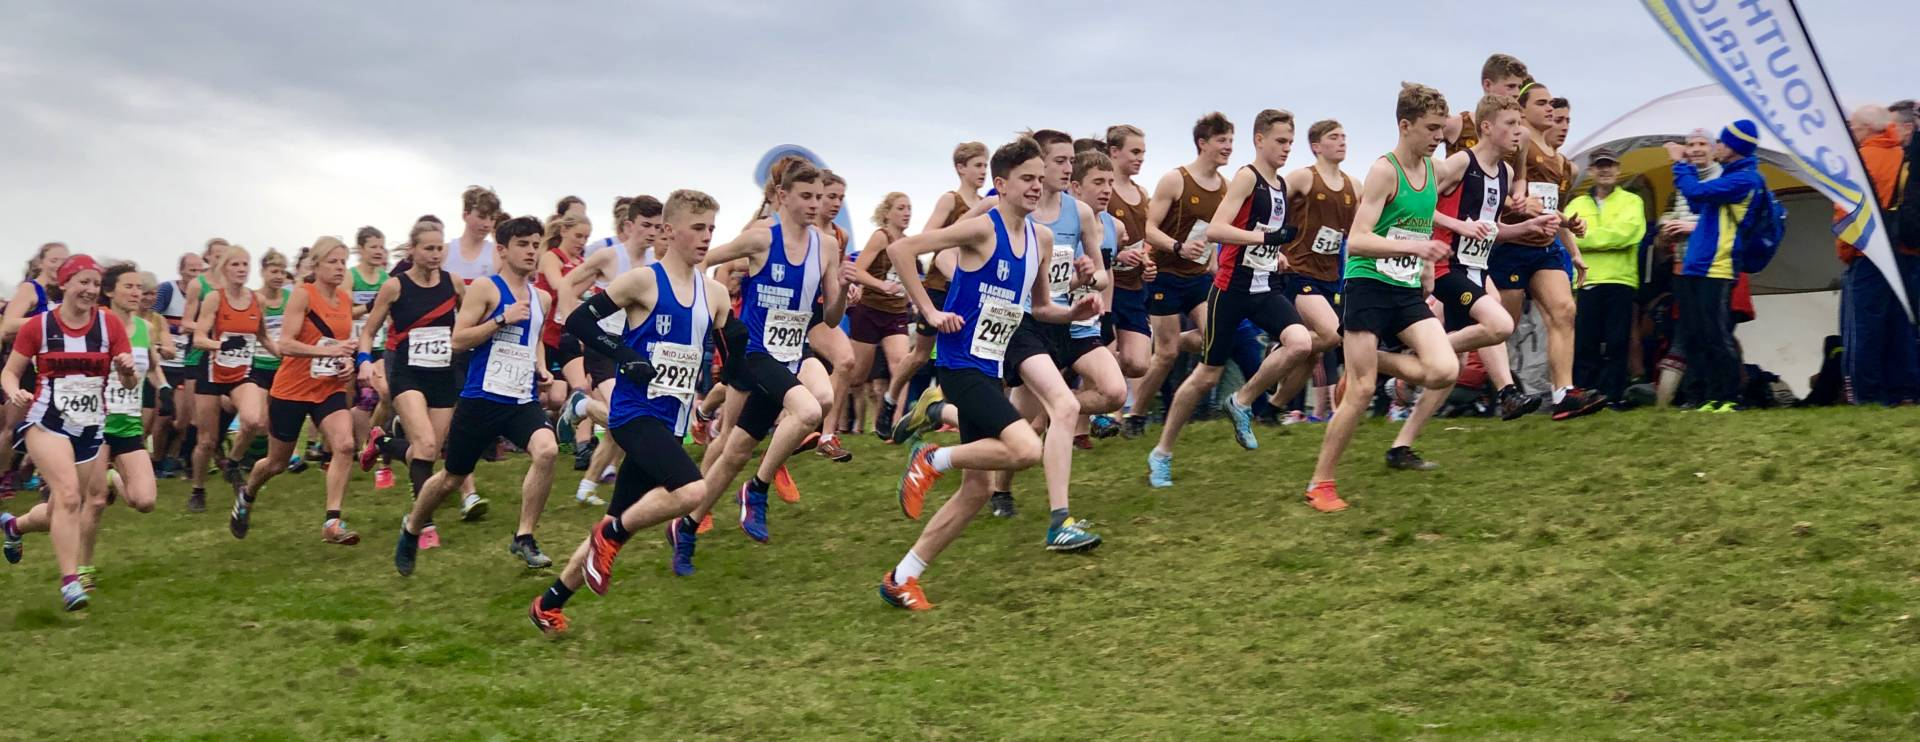 Jack Wins Mid-Lancs + Team Wins for Senior Men – U17 Men – U11 Boys – Red Rose Trophies for the Harriers at Presentation Evening – On the Fells with the Harriers –  1st and 2nd for Annabel and Pauline at Ron Hill 10k & Calum in top 3 – Victoria 3rd Woman at Haweswater Half – Joanne 3rd Woman at Settle Half and top 5 for Paul – Josh runs new PB at Podium 5k –